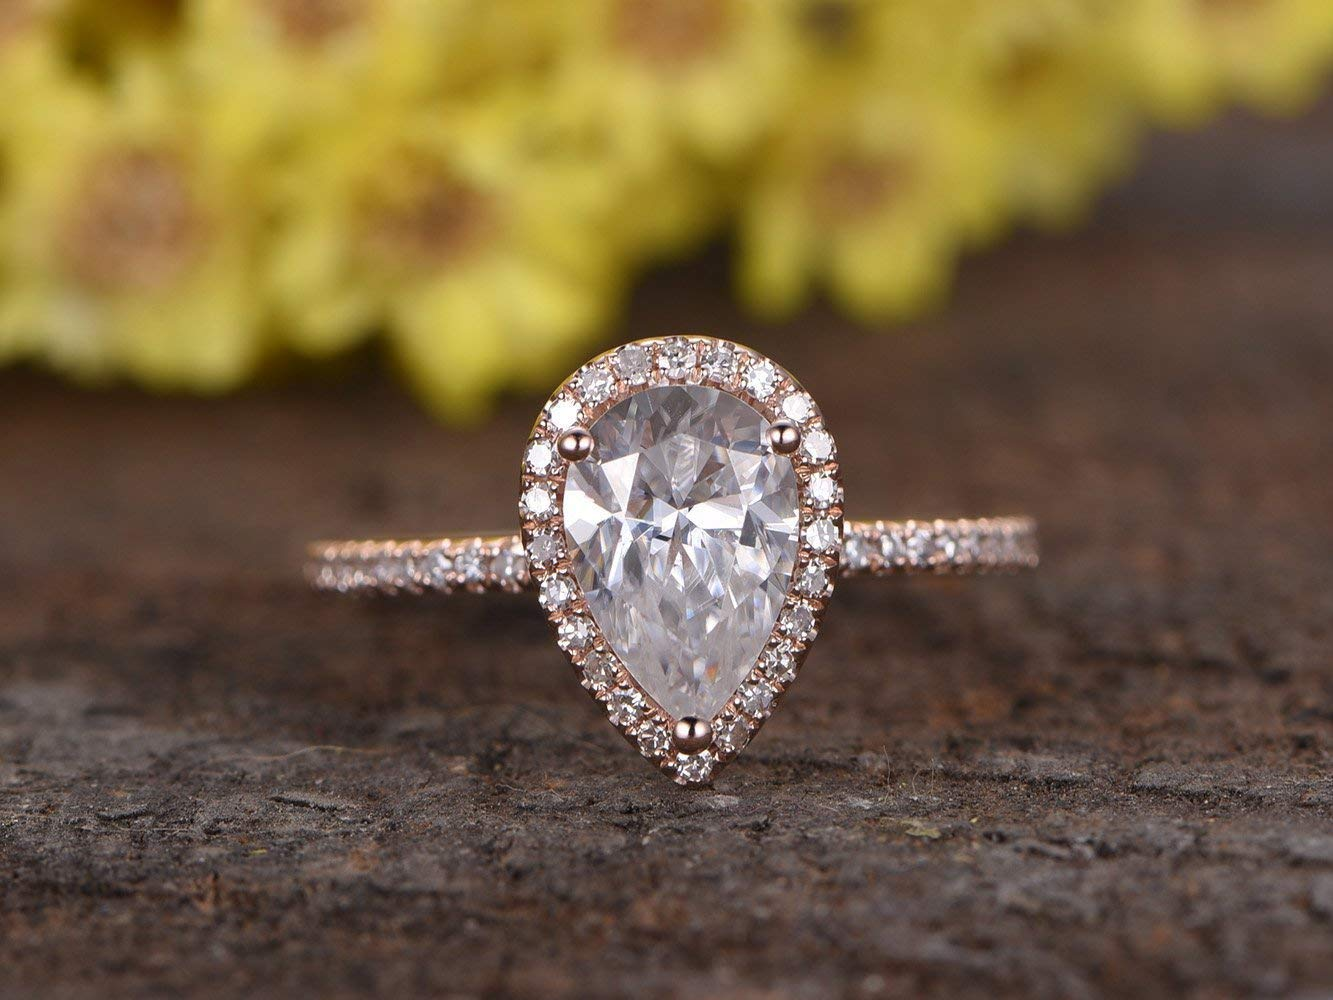 Amazon Com 5x7mm Pear Shape Cut Moissanite Engagement Ring Solid 14k Rose Gold Halo Diamond Micro Pave Wedding Band Antique Bridal Set Women Anniversary Gift For Her Charles Colvard Handmade